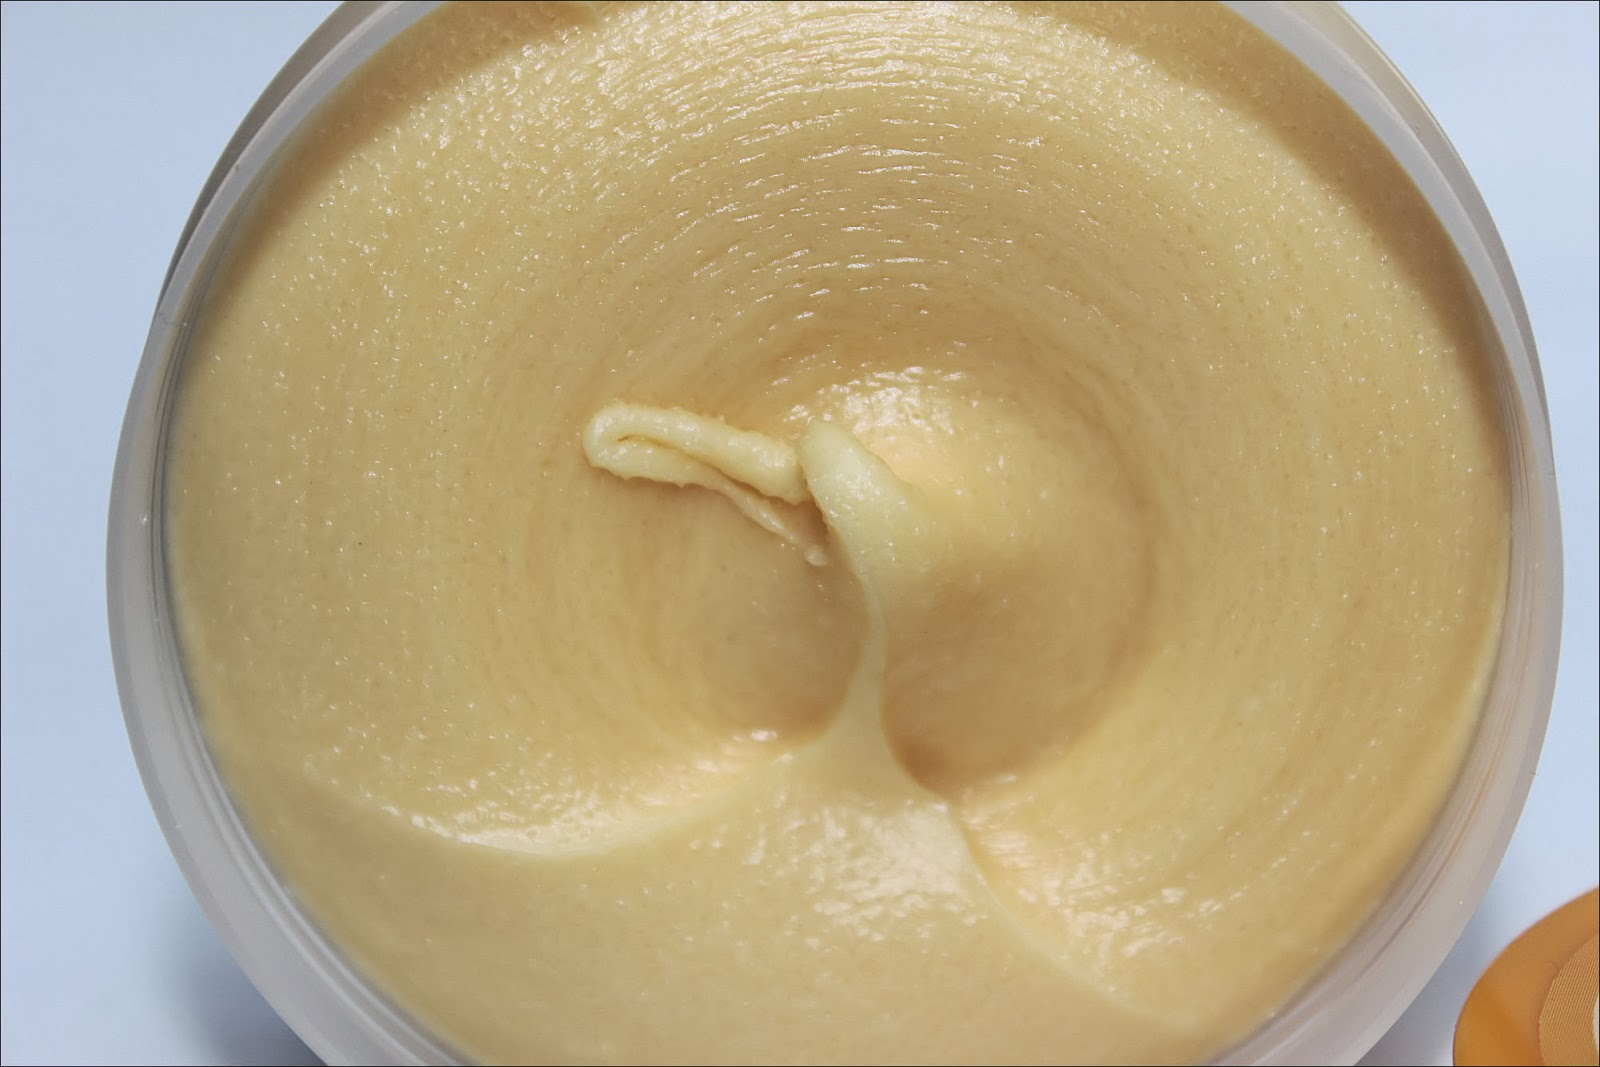 The Body Shop Honey Mania Exfoliator